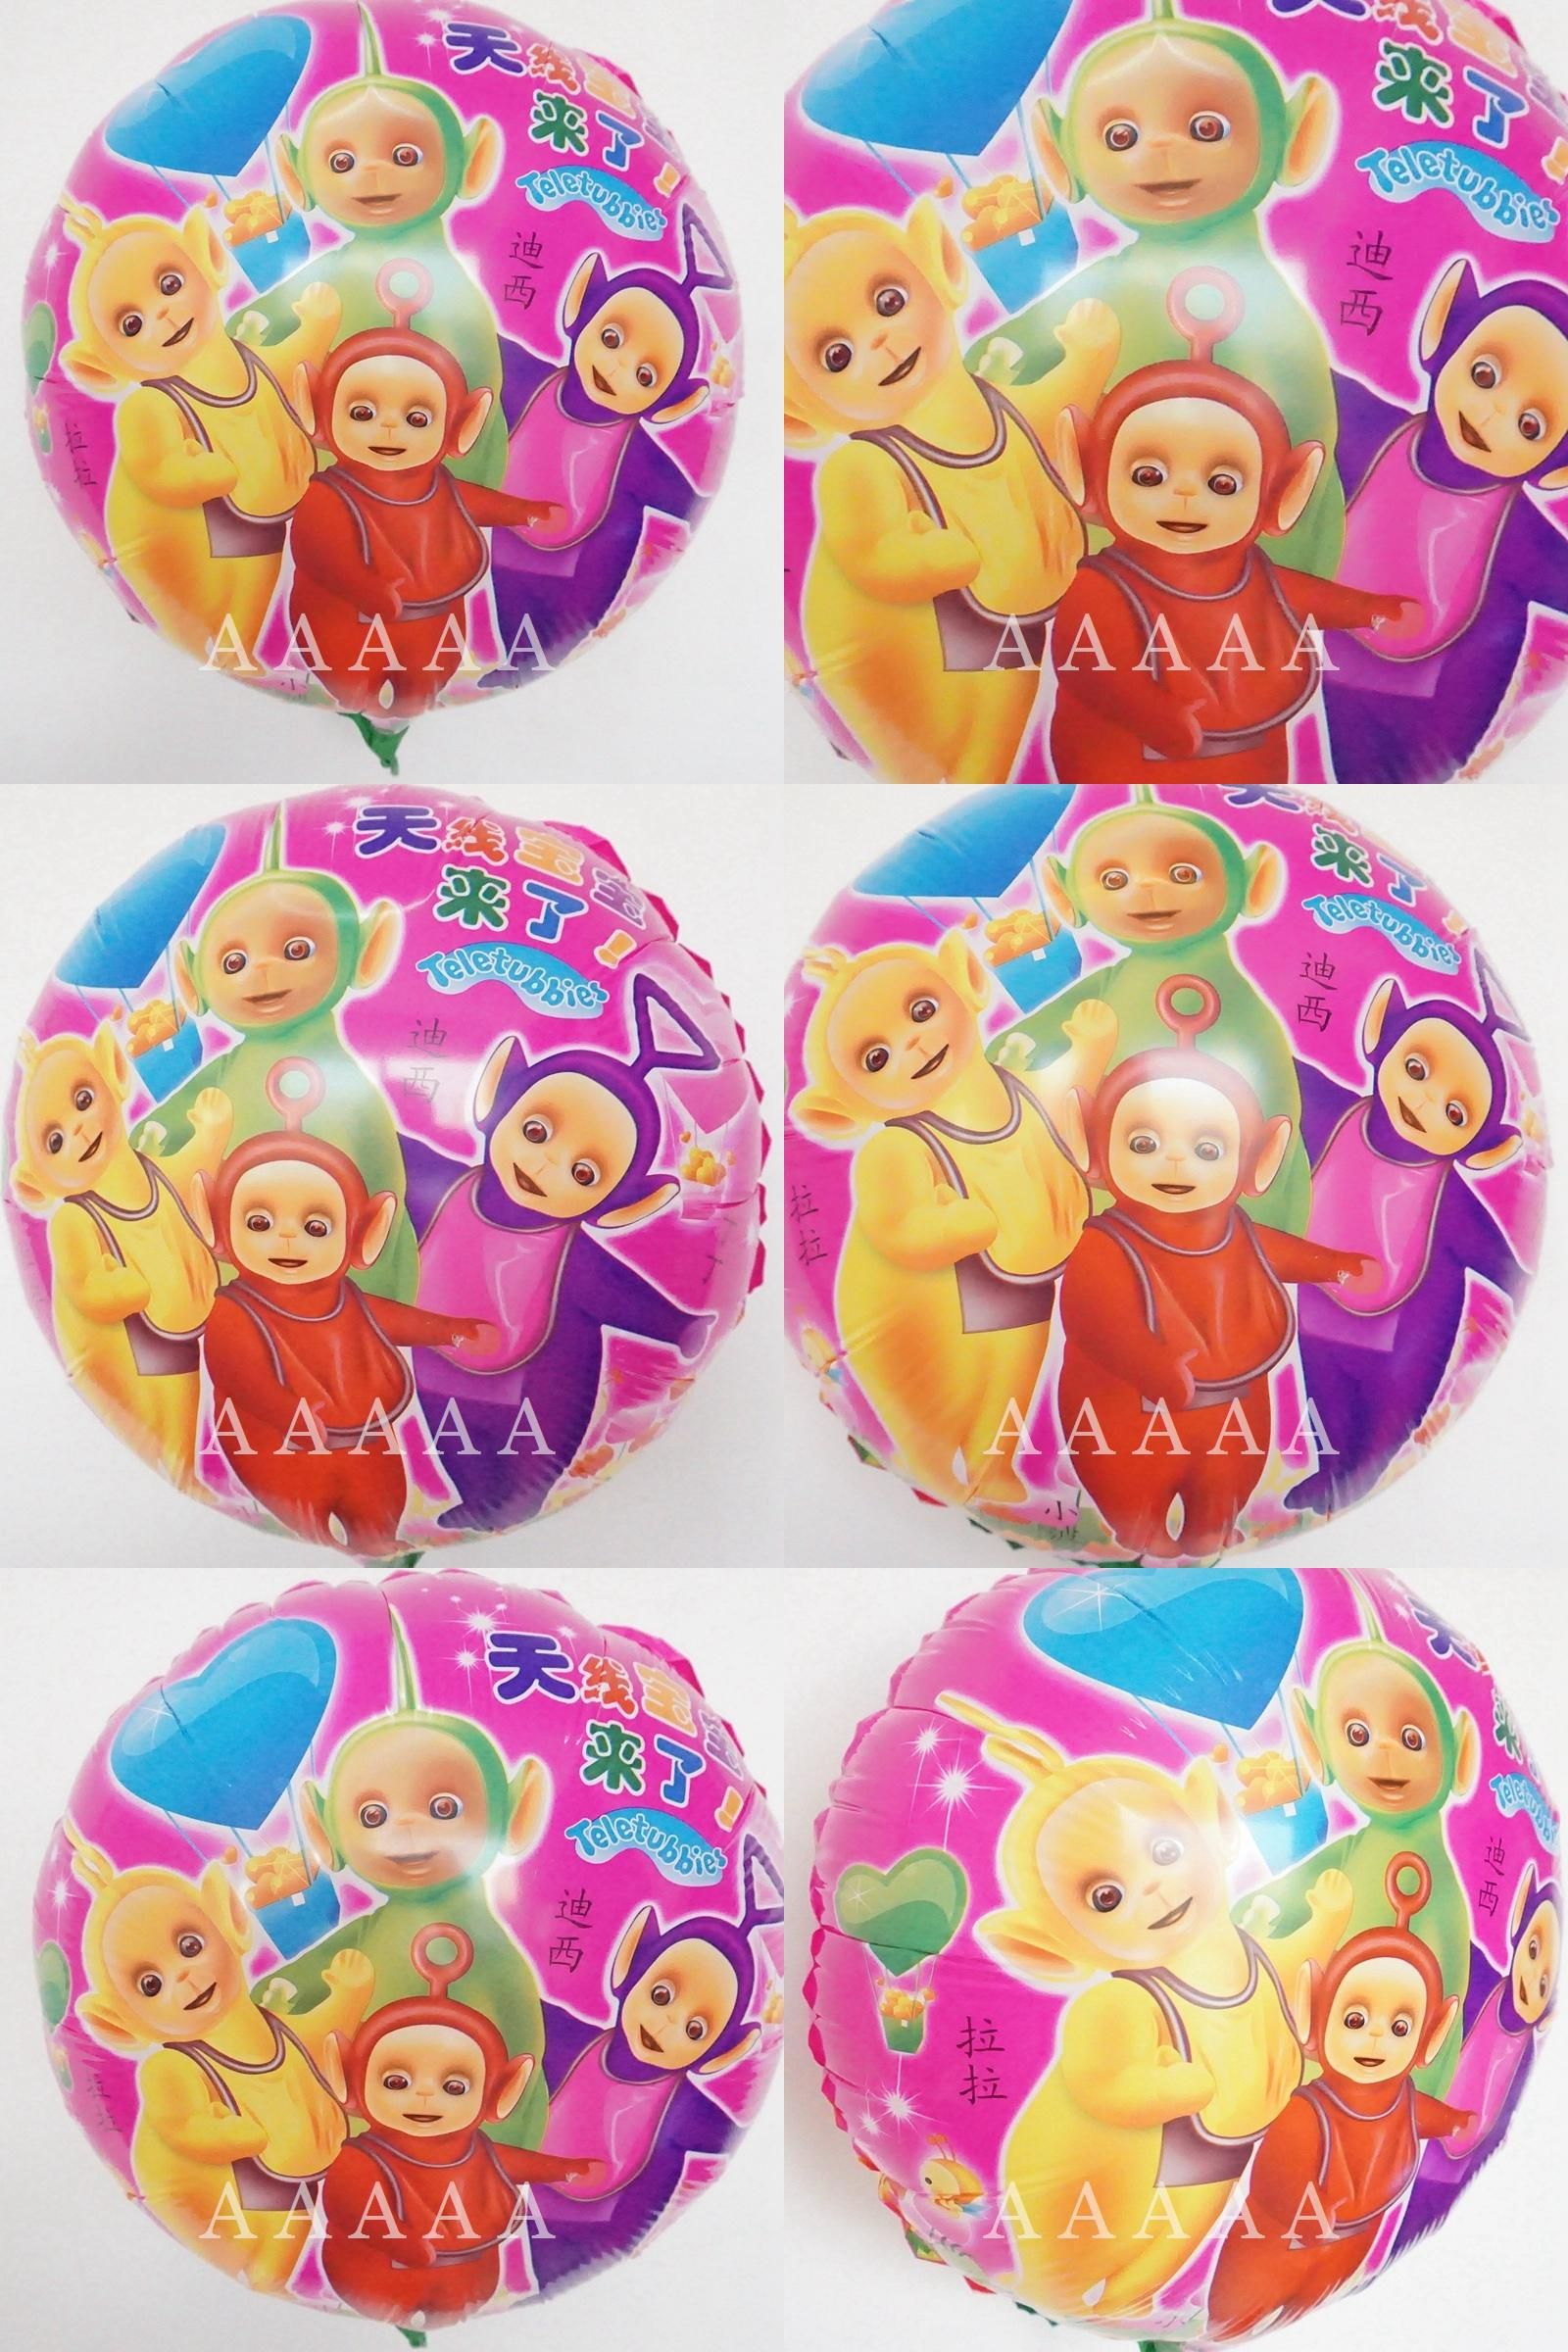 Visit to Buy] (2pcs/lot) 18inch round cartoon balloons Teletubbies ...